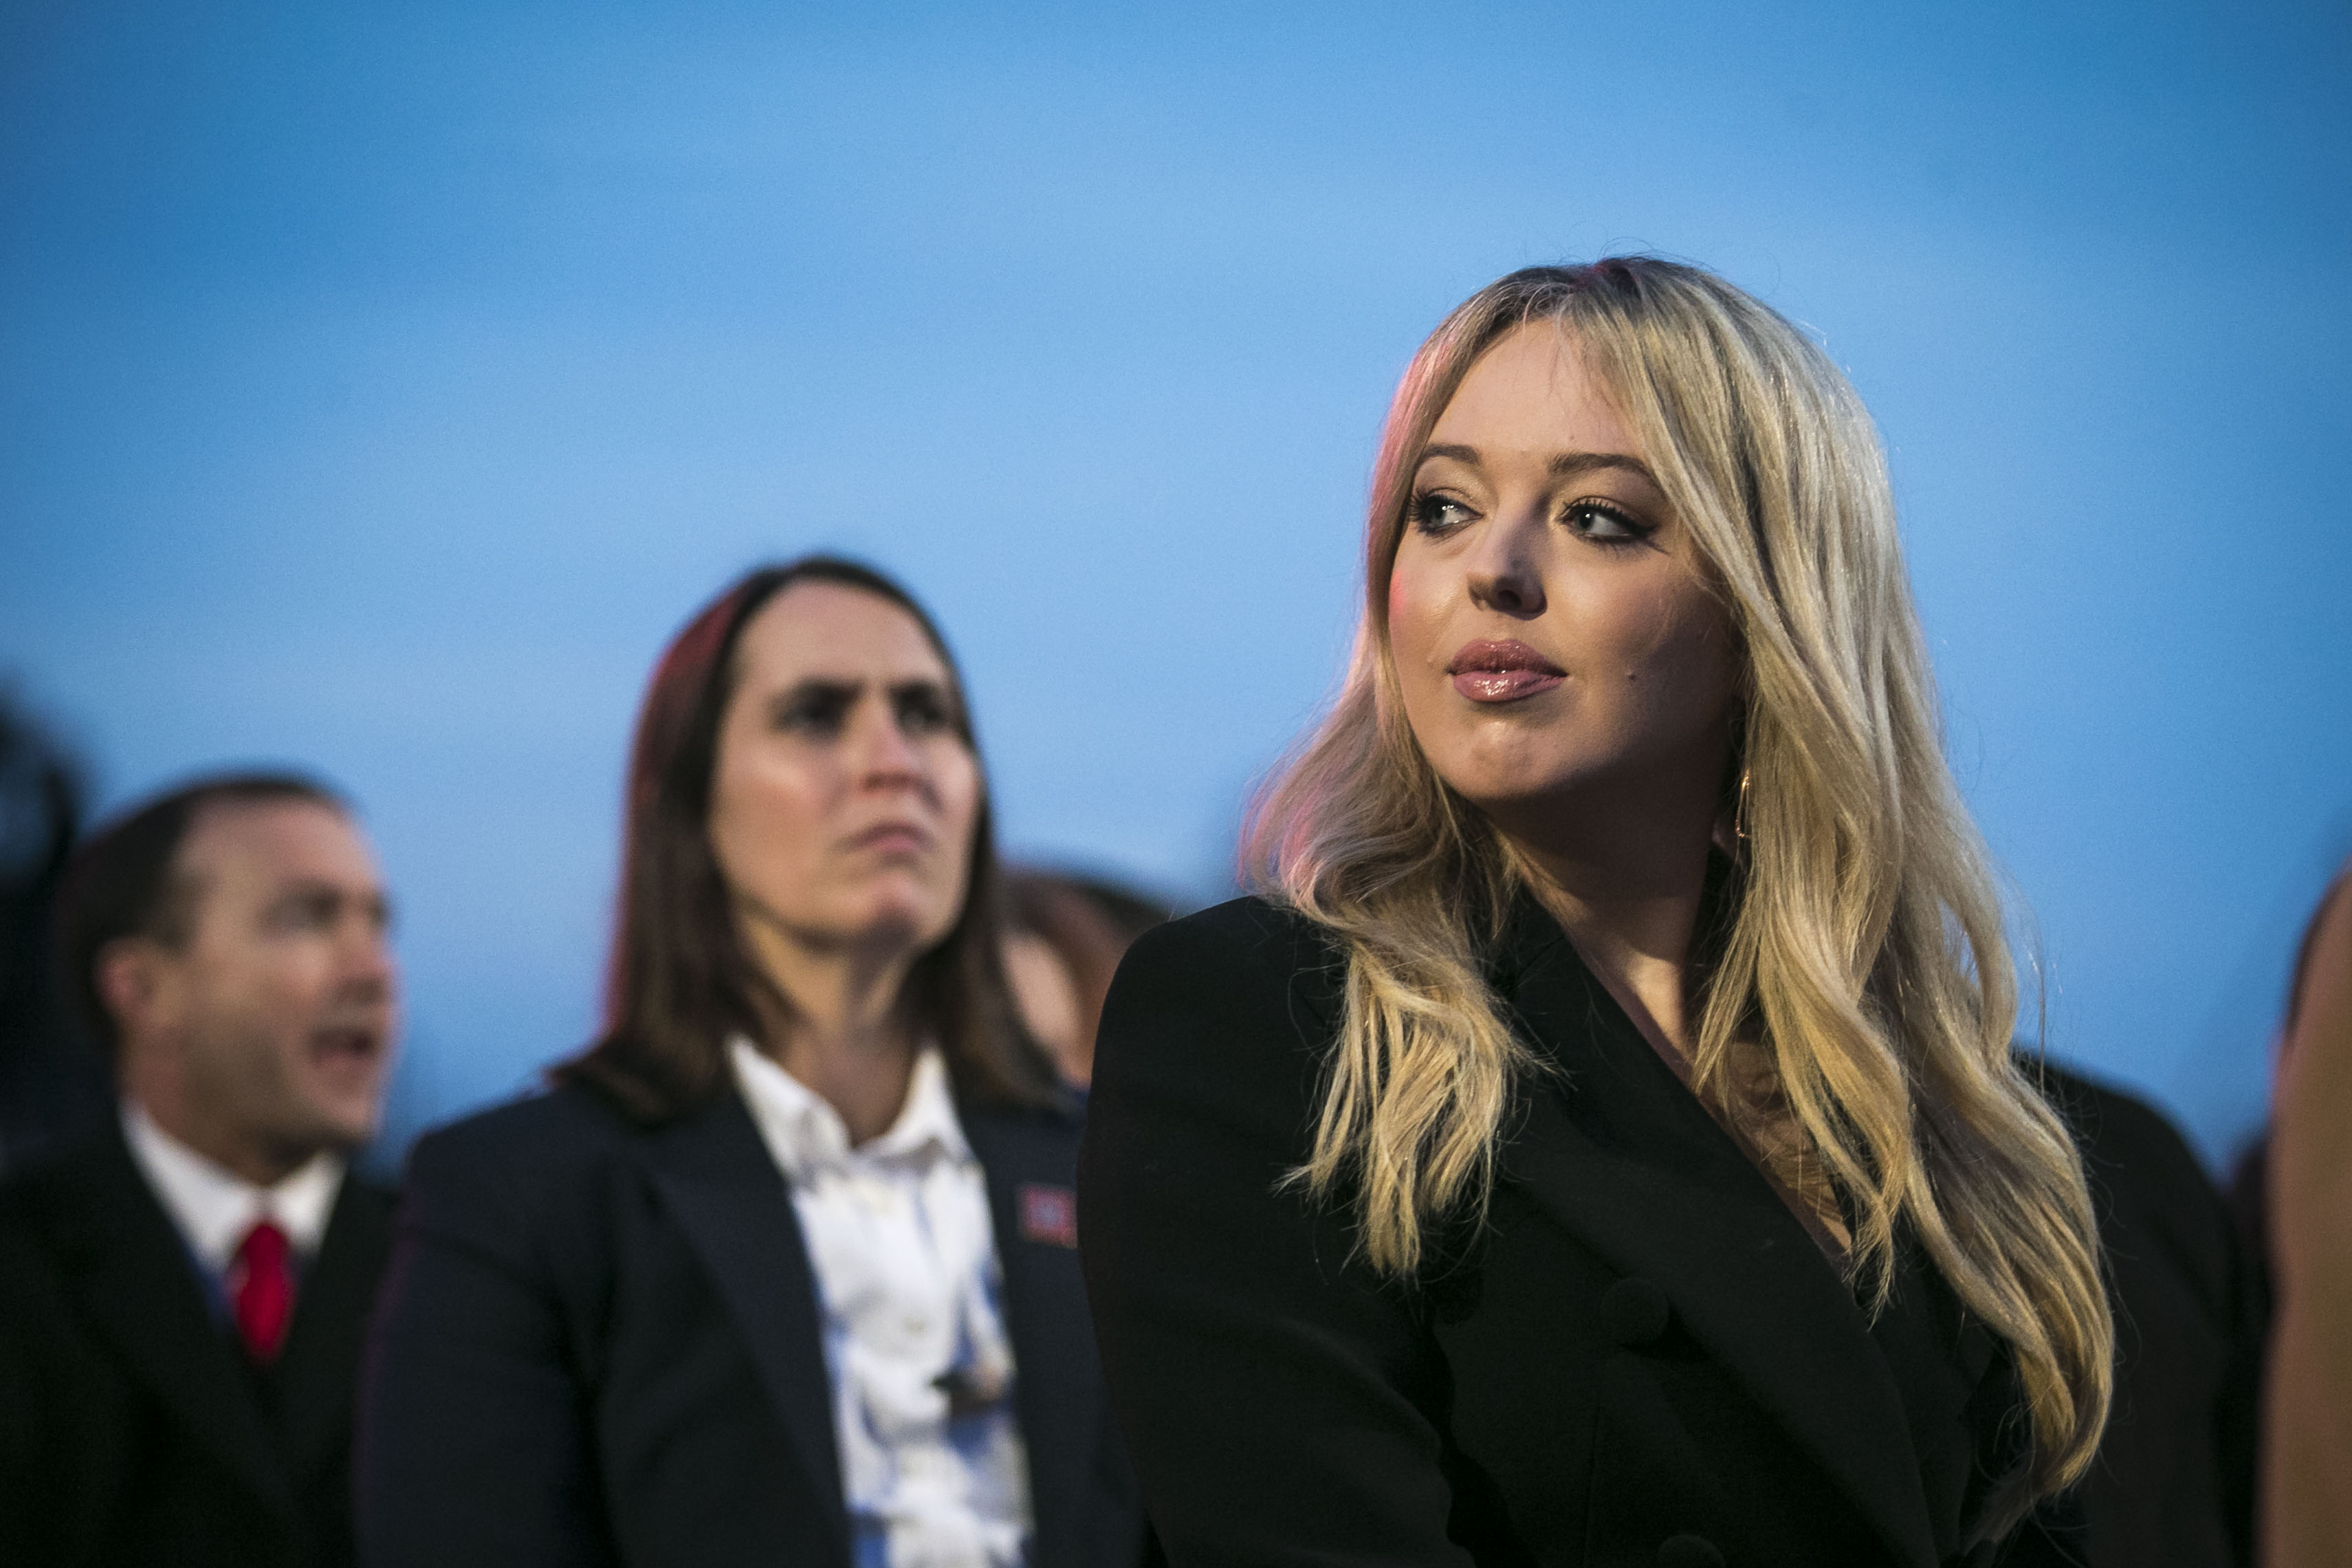 Tiffany Trump, daughter of U.S. President Donald Trump, attends the 95th annual national Christmas tree lighting ceremony held by the National Park Service on the Ellipse near the White House on November 30, 2017| Photo: Getty Images